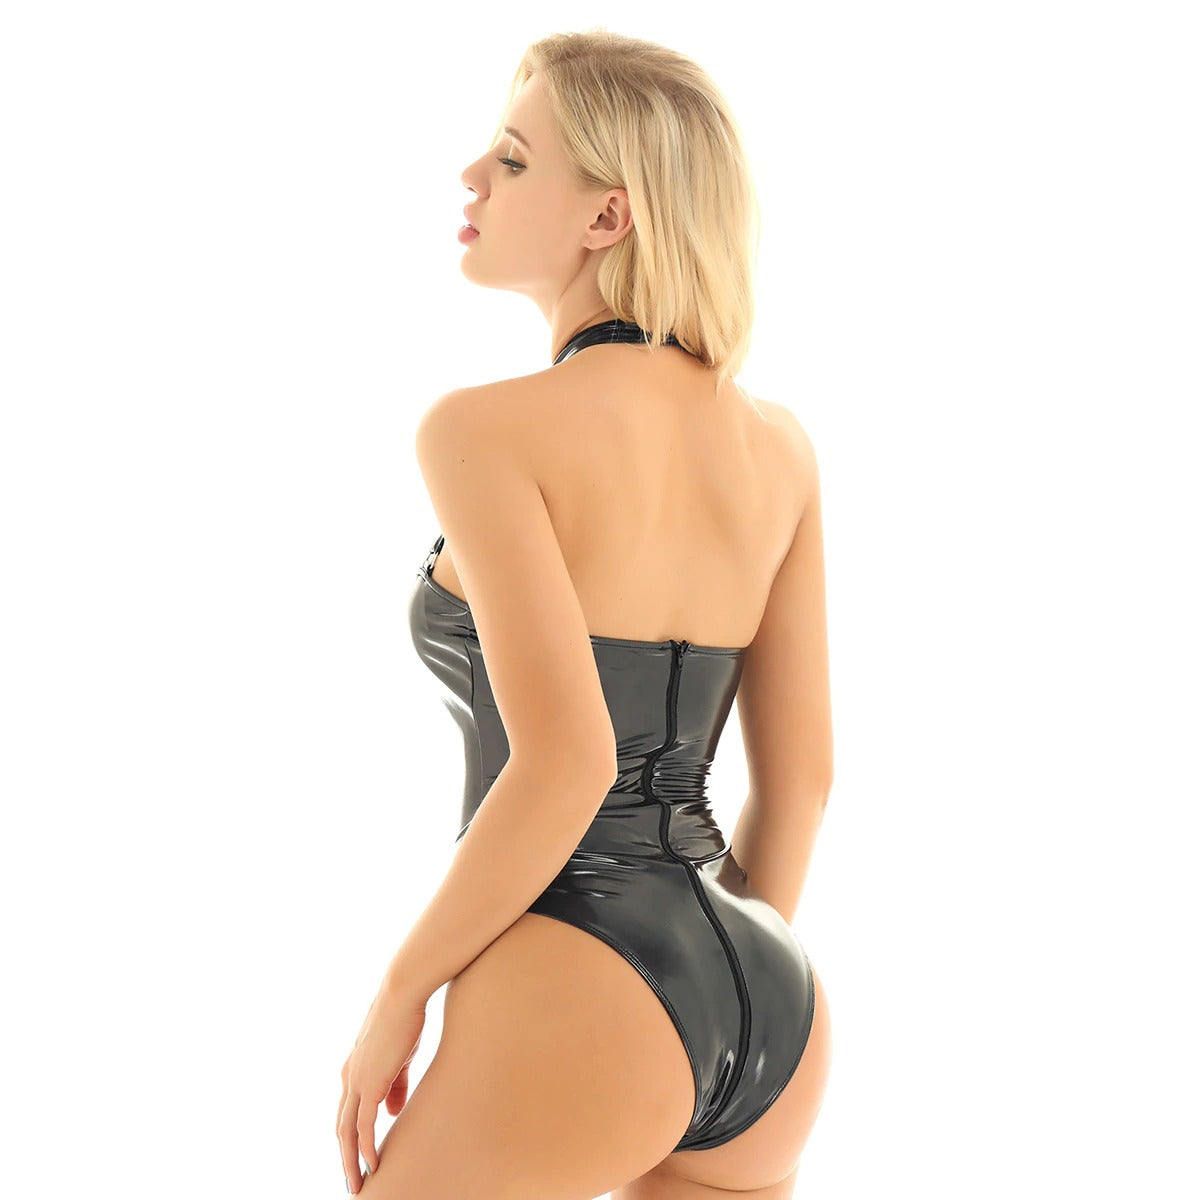 Women's Sexy Bodystocking Rompers for plus size / Wetlook Patent Leather Strappy Bust Bodysuit - HARD'N'HEAVY